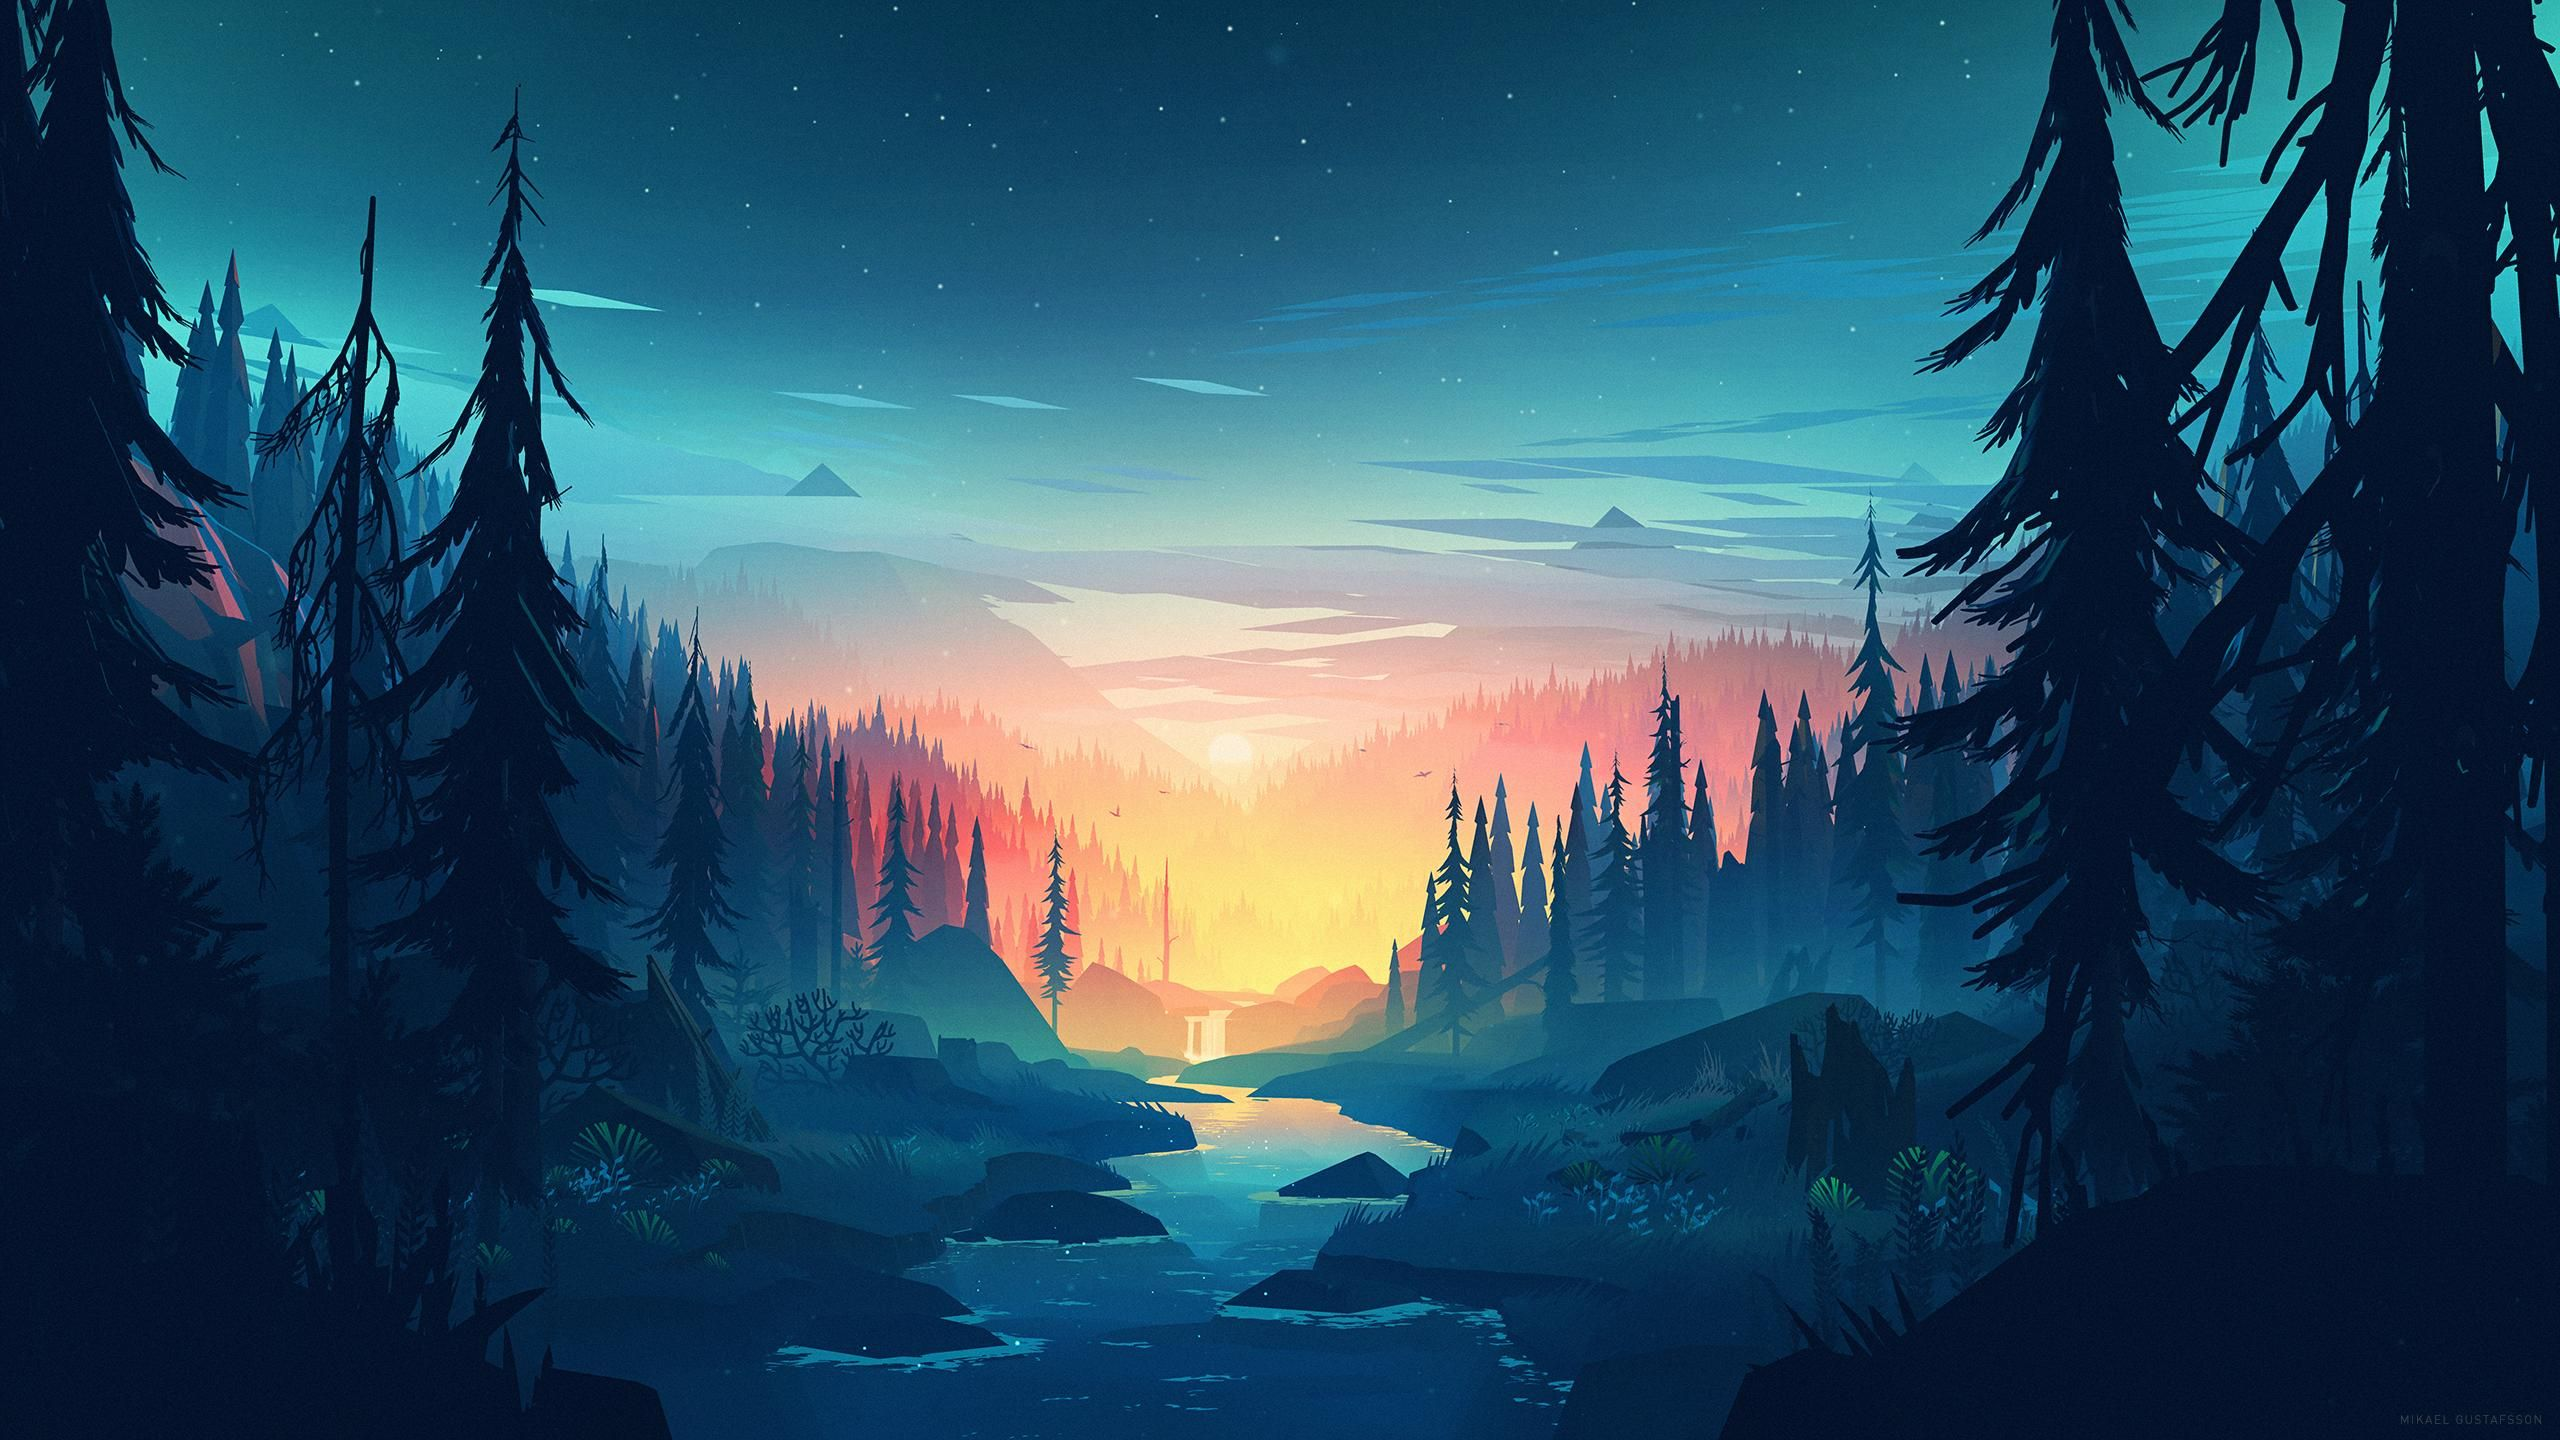 Insane sunset environment wallpaper by Mikael Gustaffson